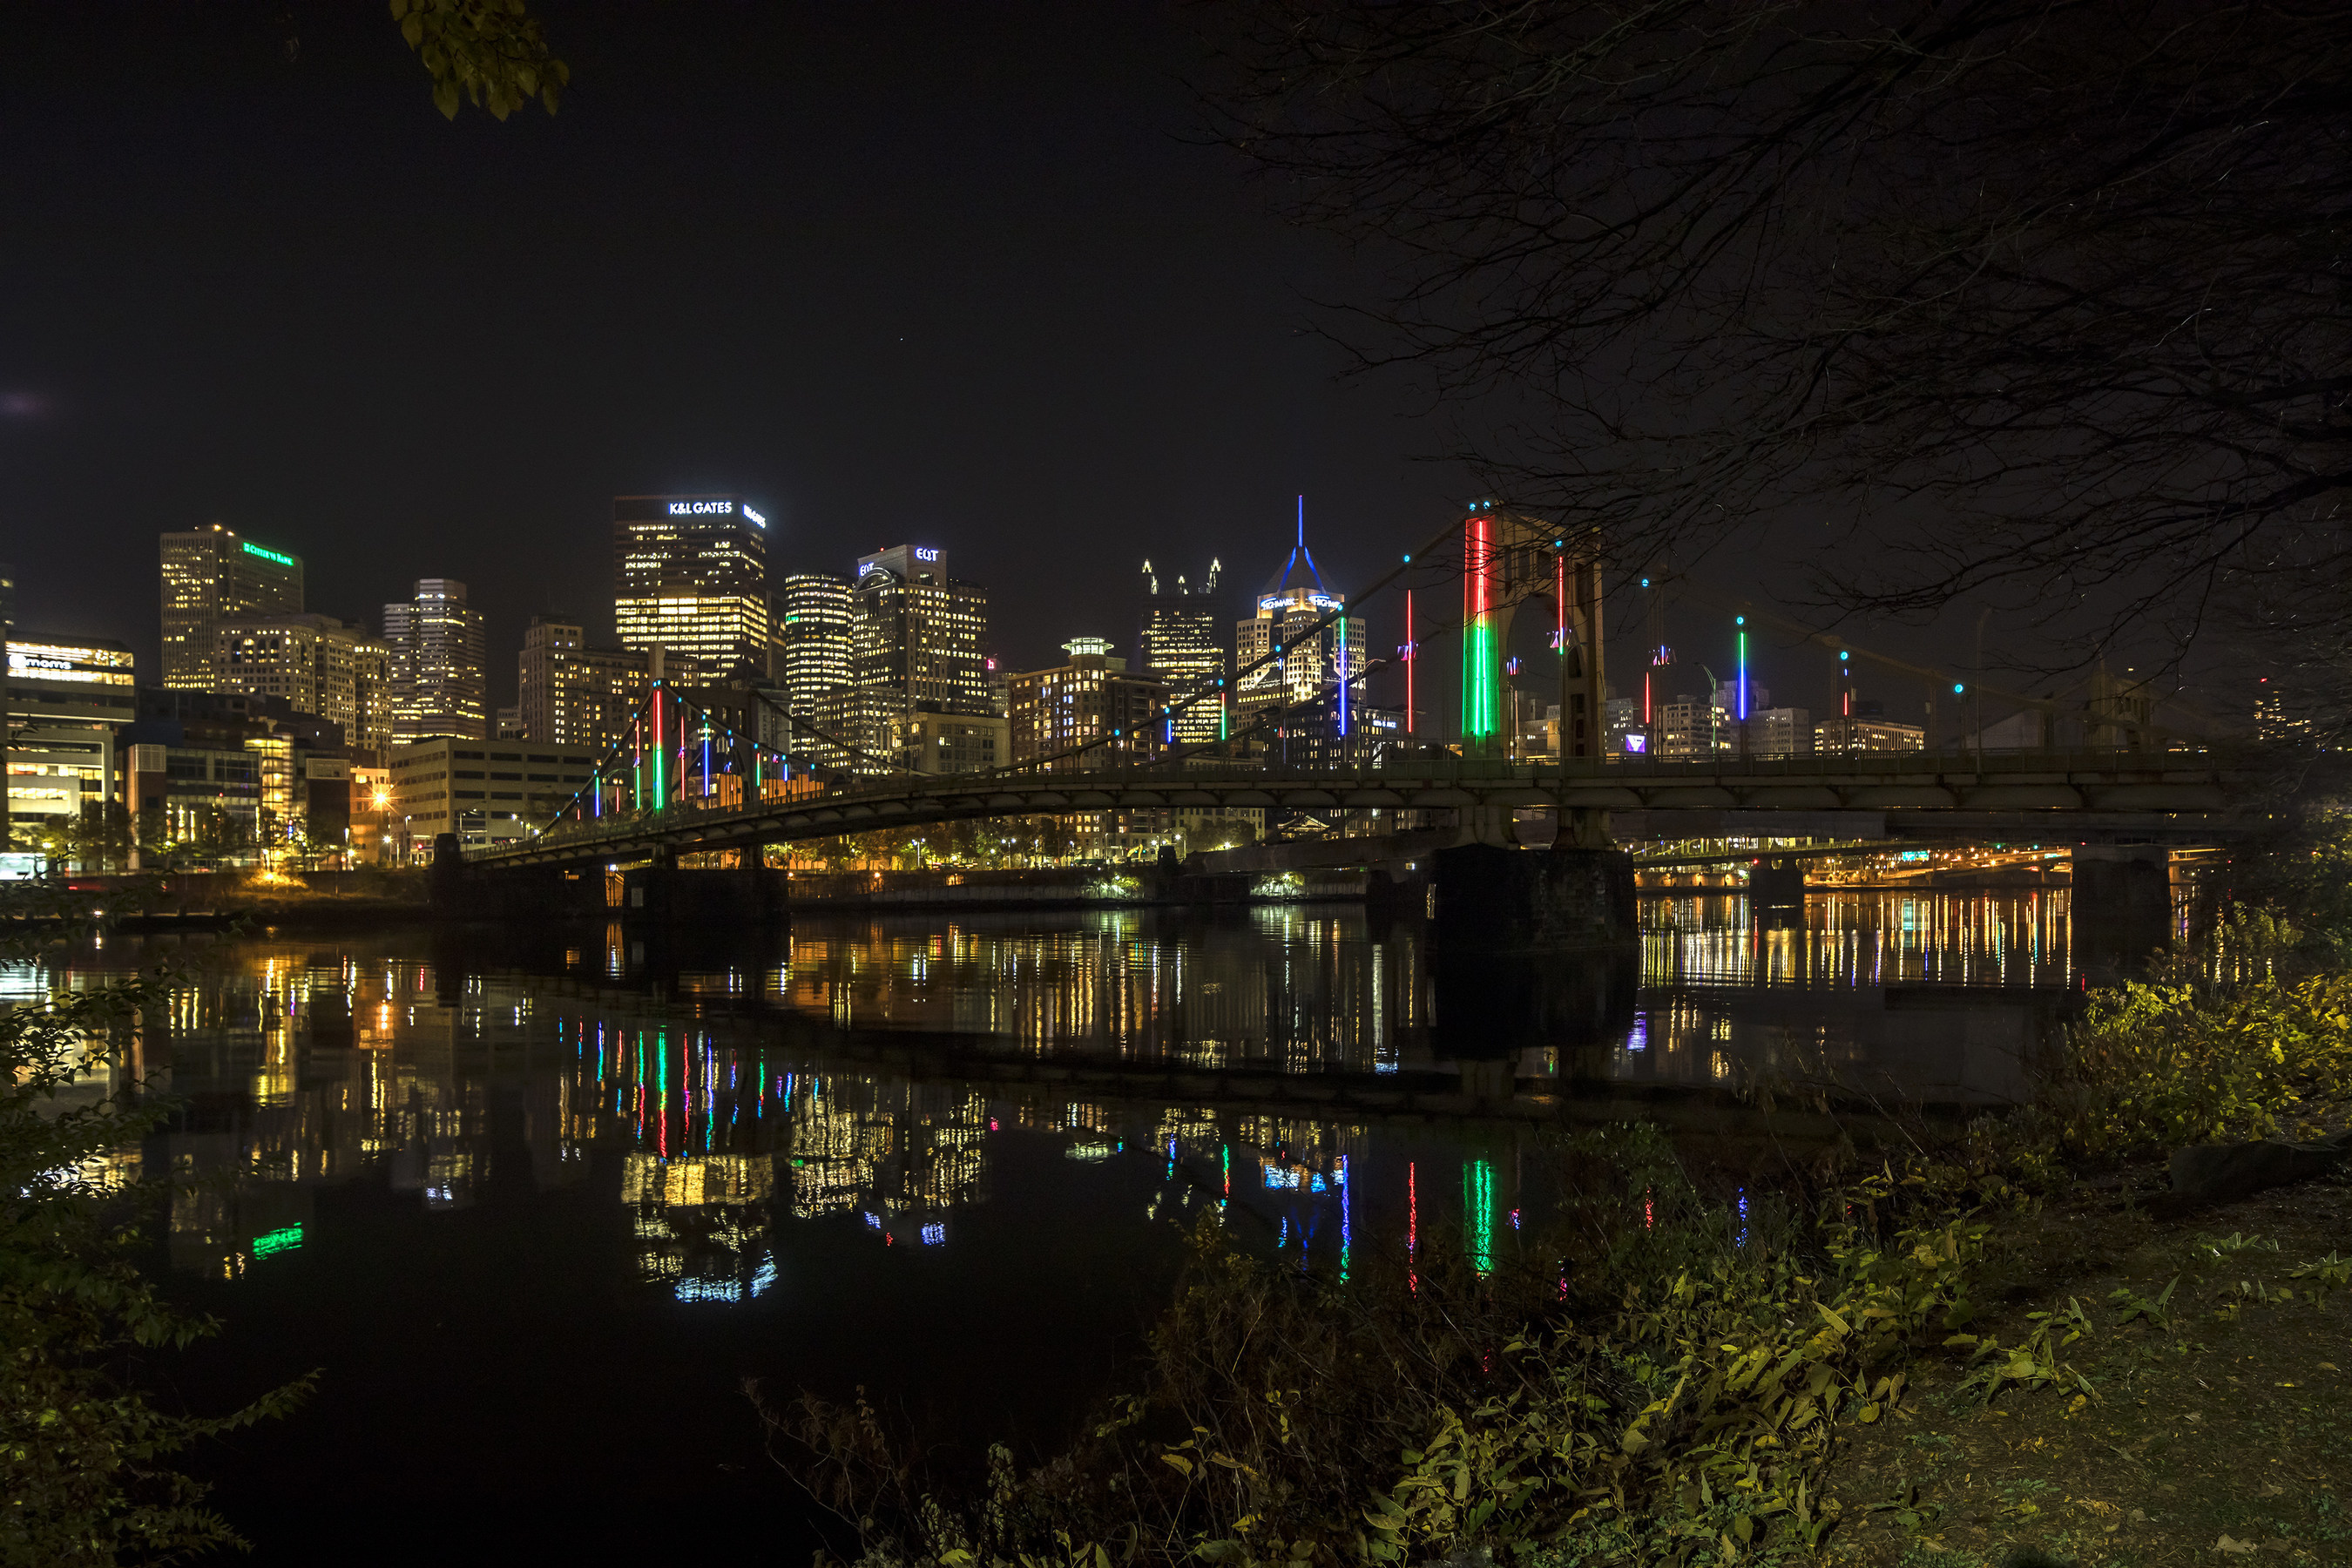 Sustainability and innovation are highlighted in Pittsburgh this holiday season as one of the city's famed bridges is awash in light and colors thanks to the  Energy Flow bridge lighting installation, powered in part by wind energy. Photo credit: Roy Engelbrecht